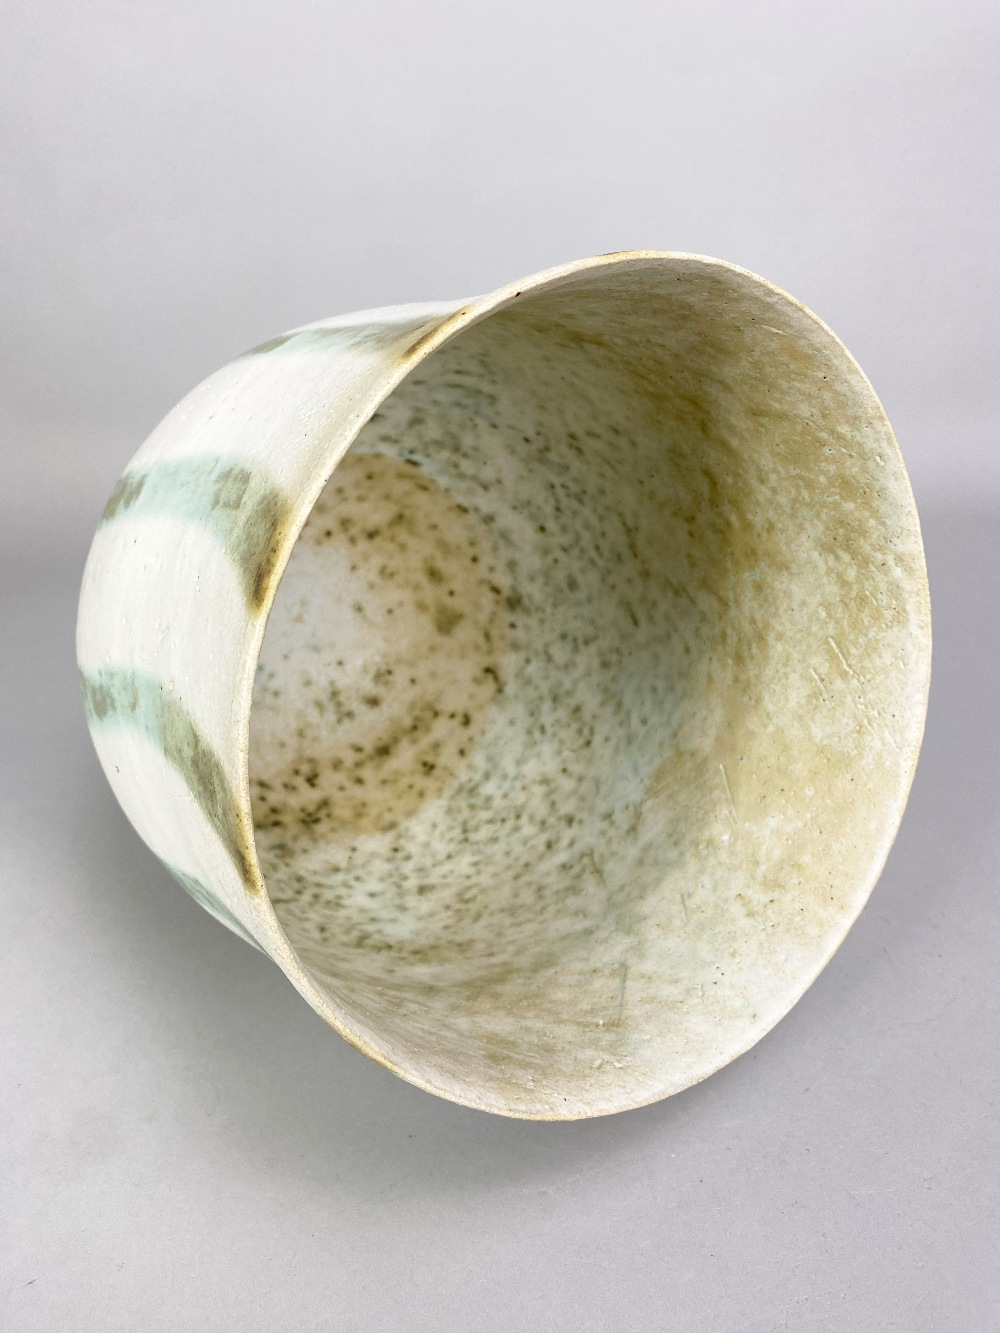 JOHN WARD (born 1938); a deep stoneware vessel with mottled green stripes on off white ground, - Image 3 of 5